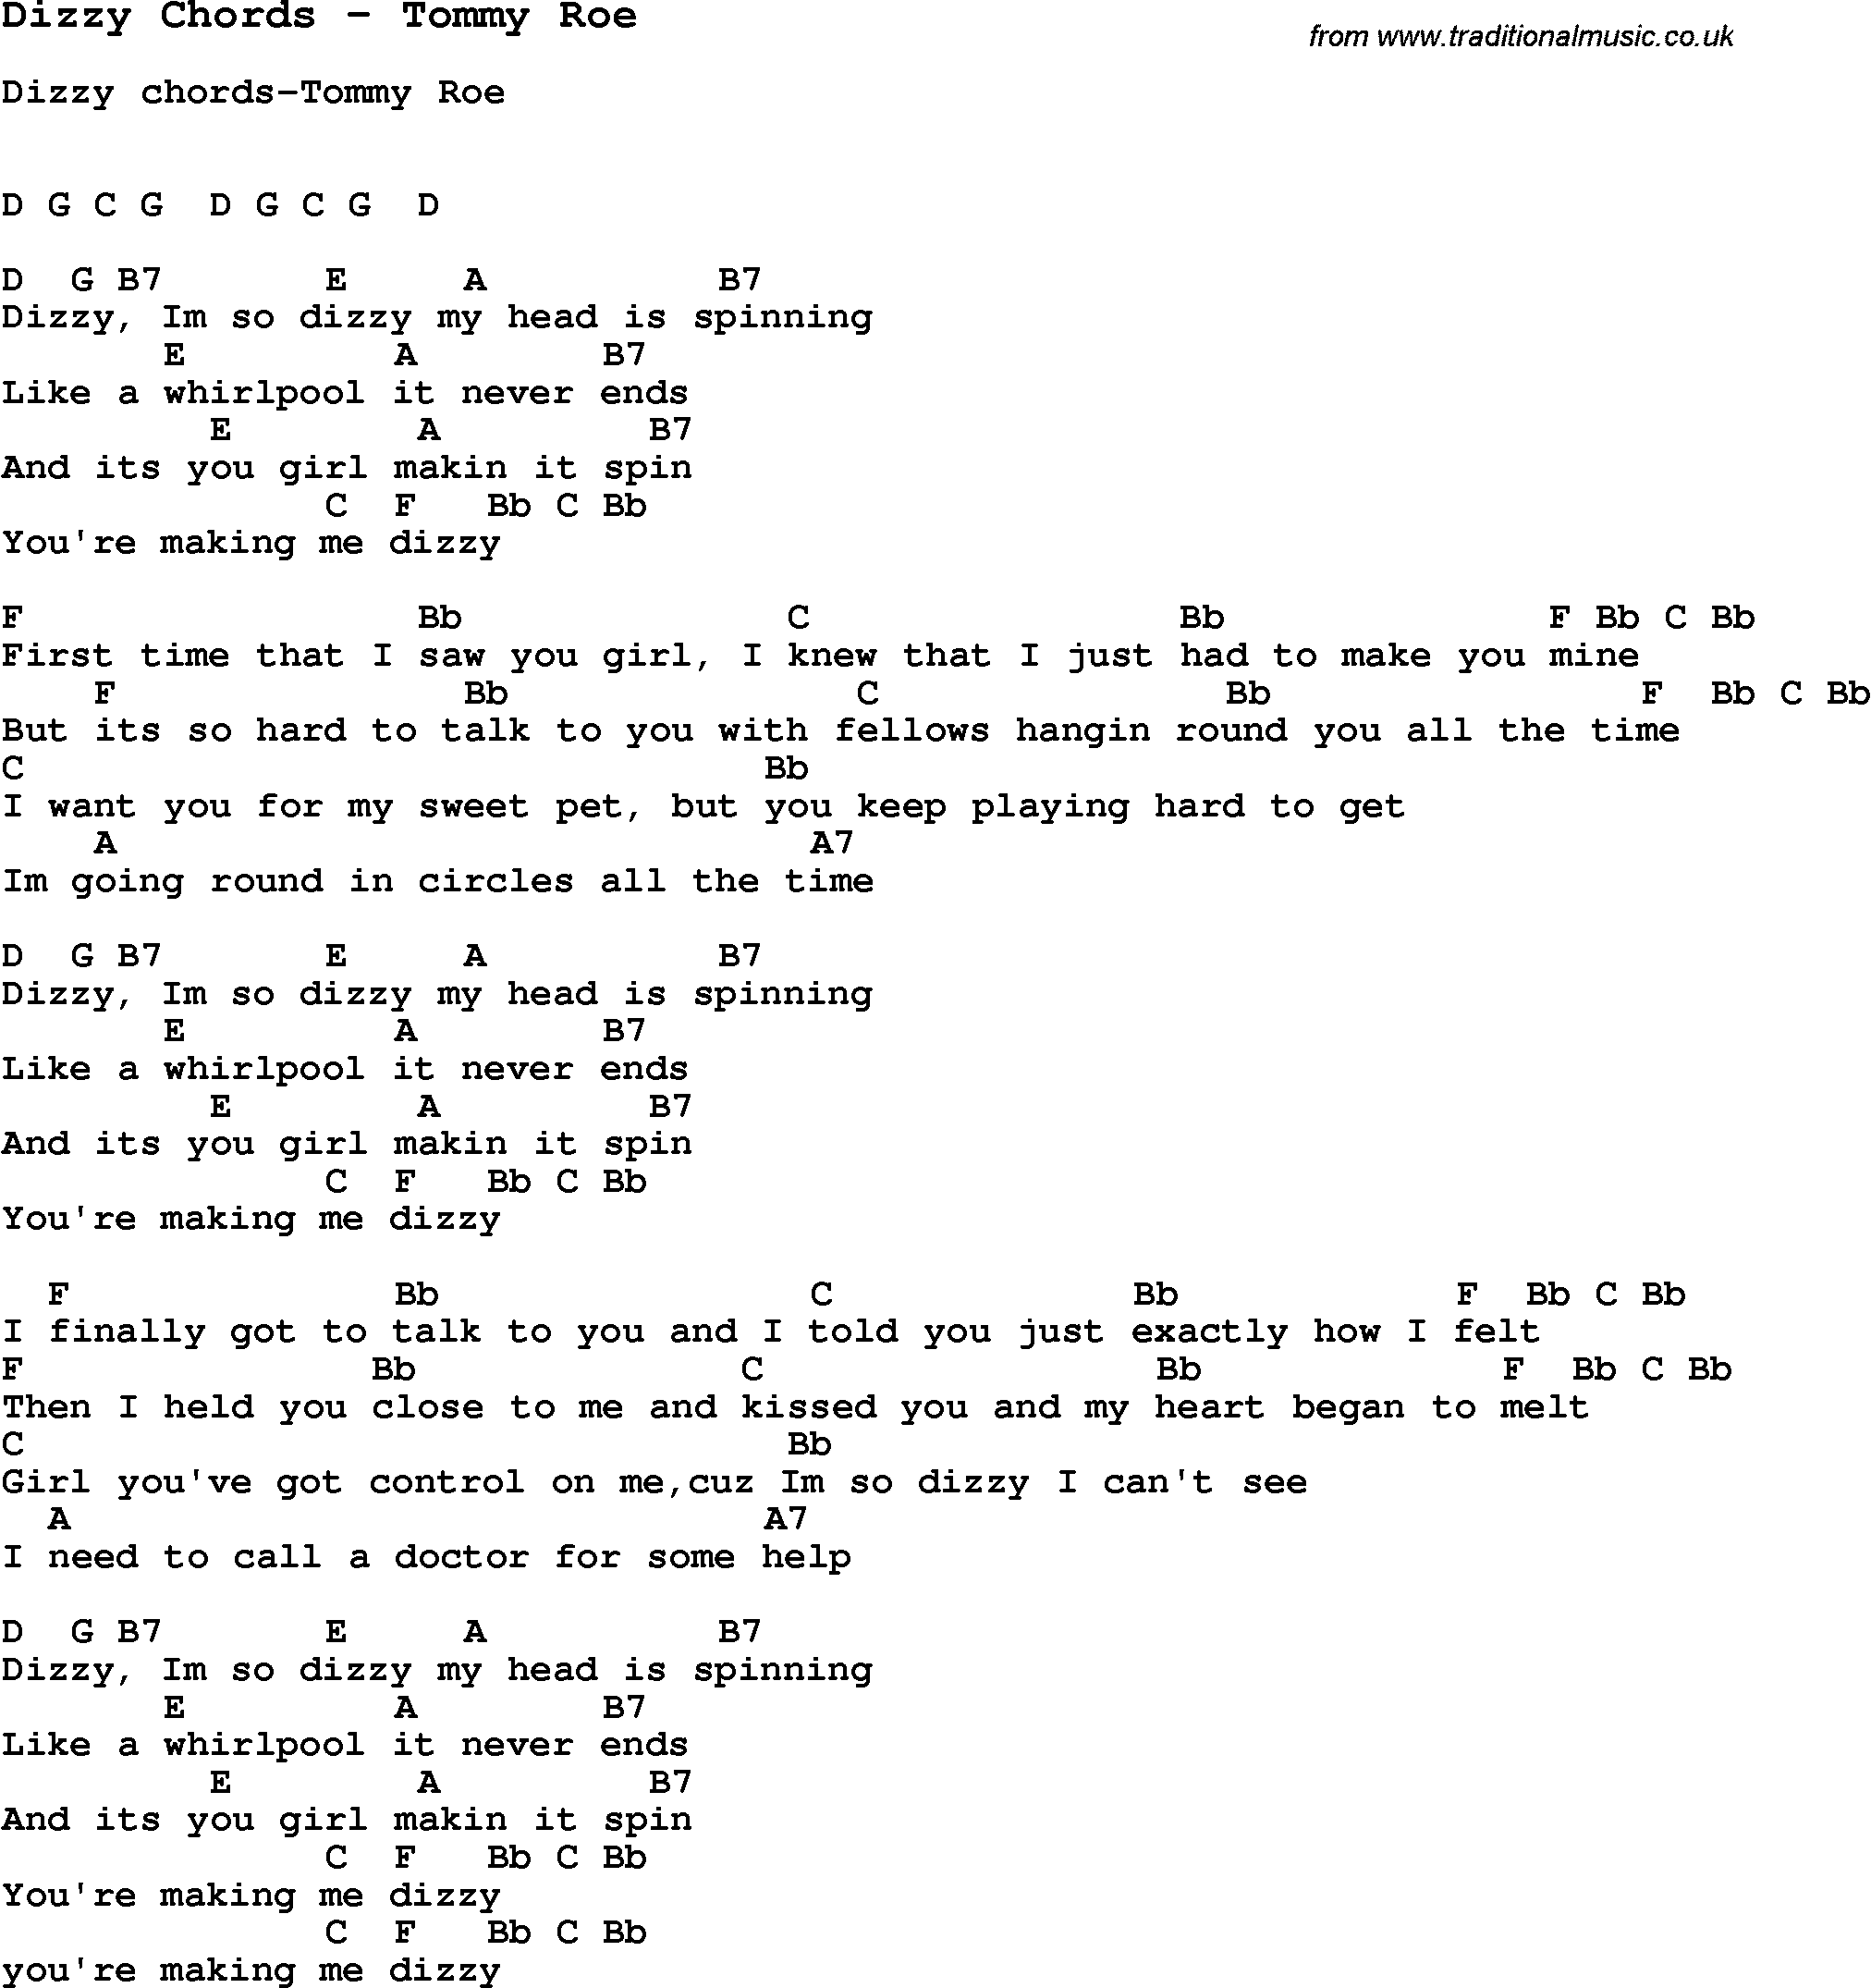 Song Dizzy Chords by Tommy Roe, song lyric for vocal performance plus accompaniment chords for ...